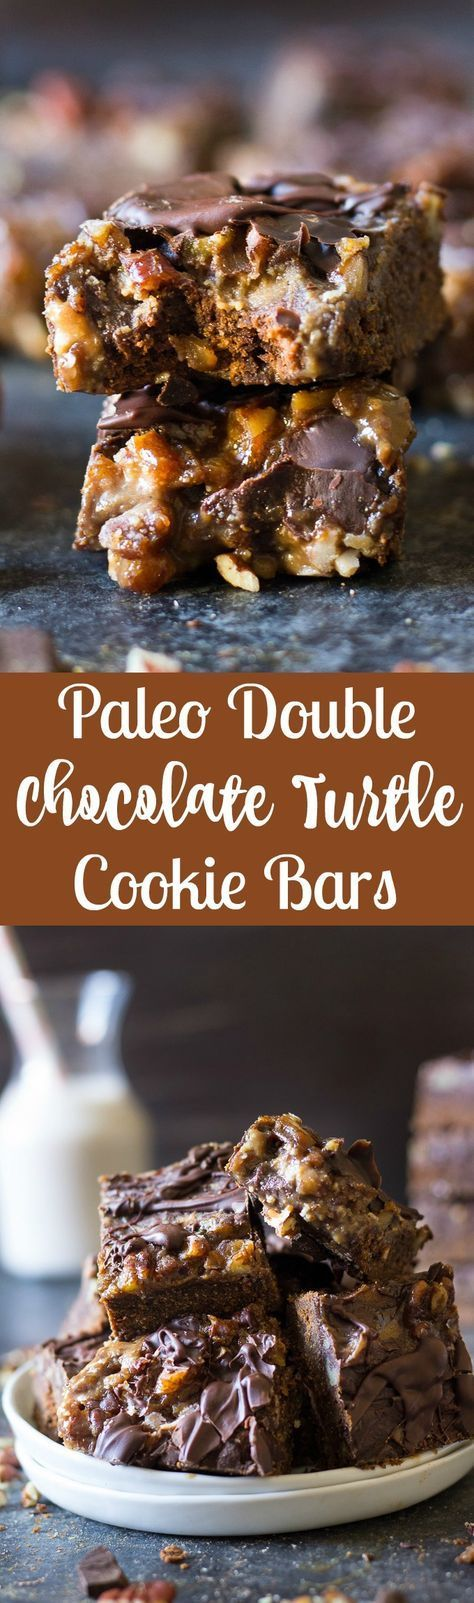 Gooey and delicious Paleo double chocolate turtle bars with a chocolate cookie crust, dairy free caramel pecan layer and melted chocolate topping.